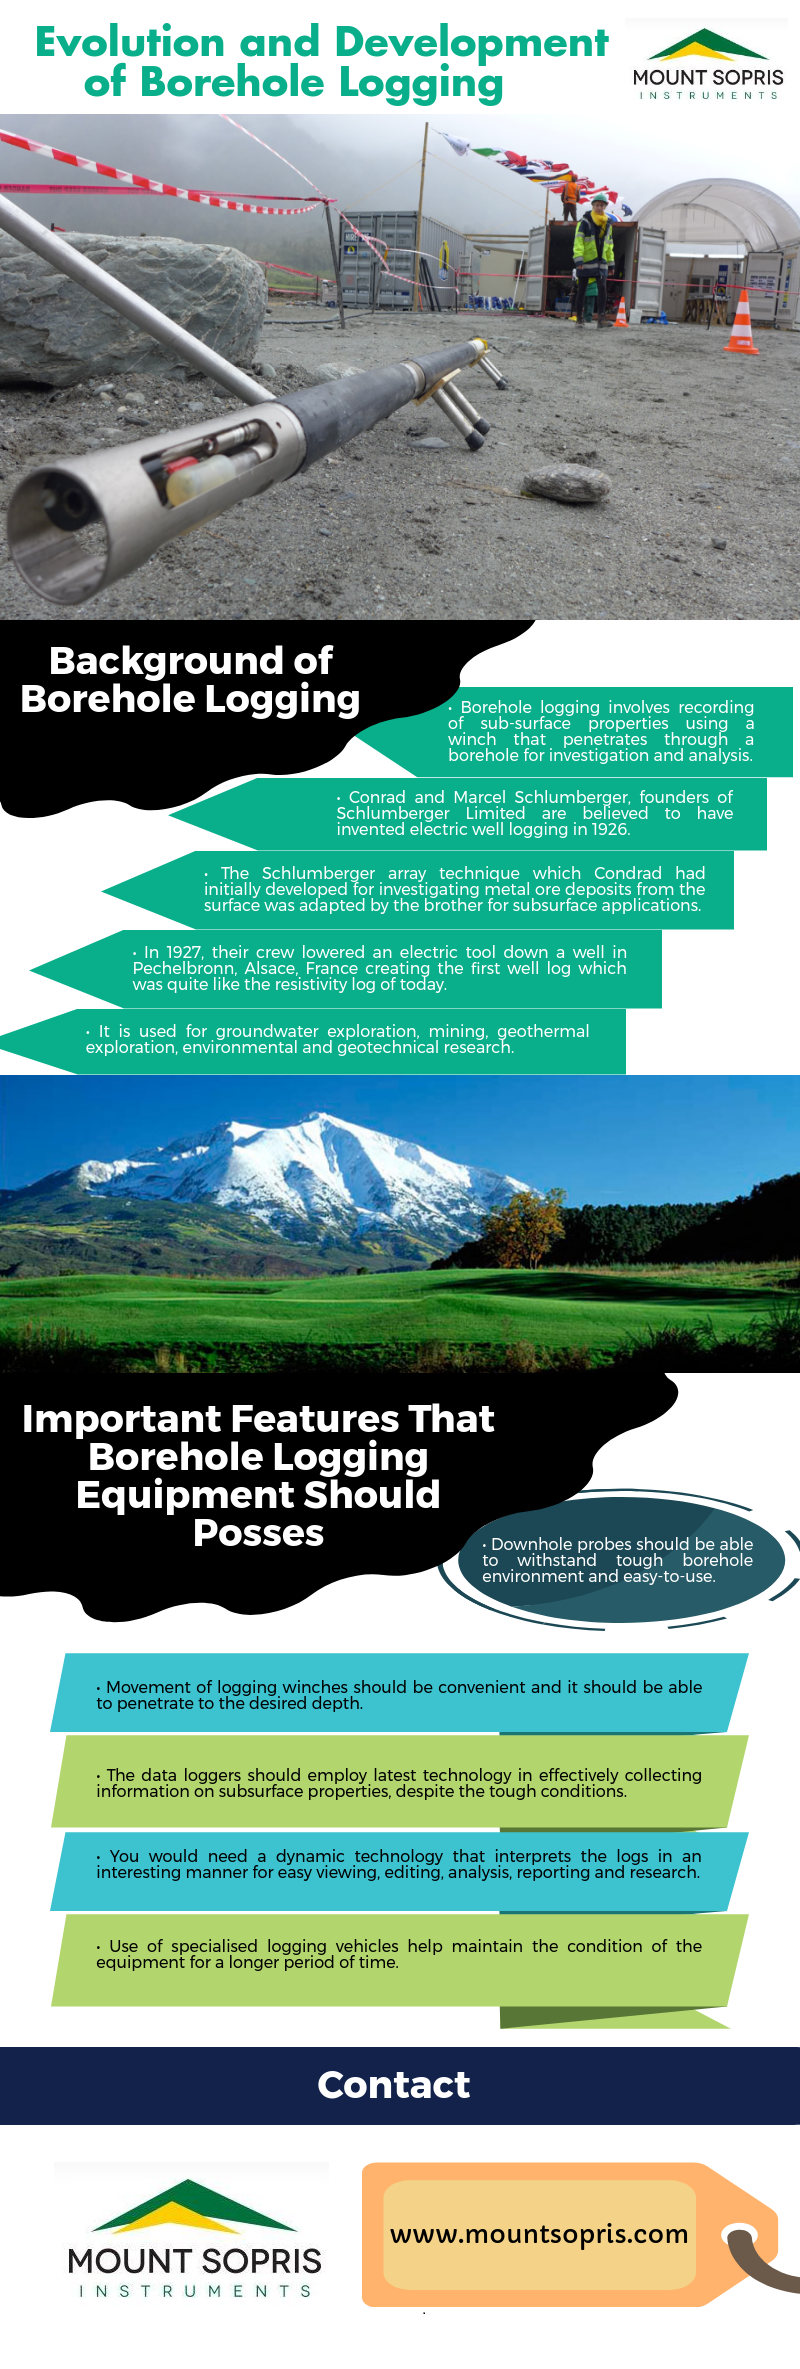 Pin by Mount Sopris Instruments on Borehole Logging